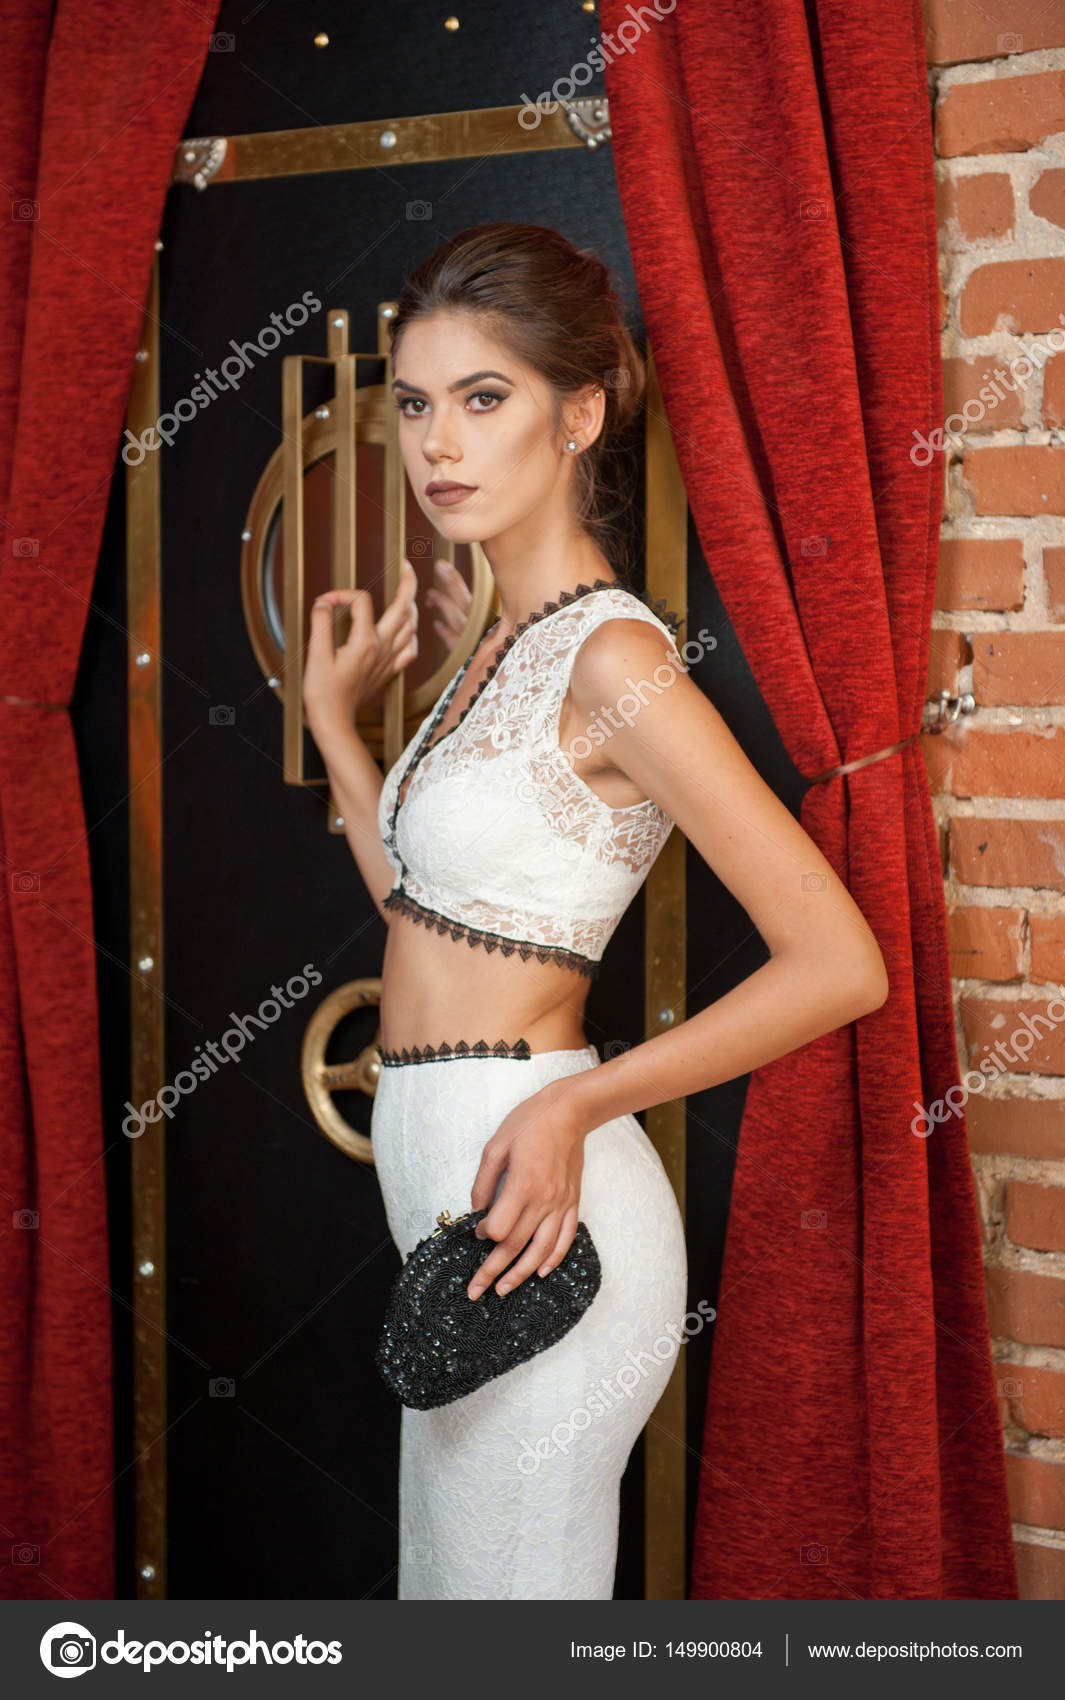 Fashionable Sensual Attractive Lady With White Dress Standing Near A